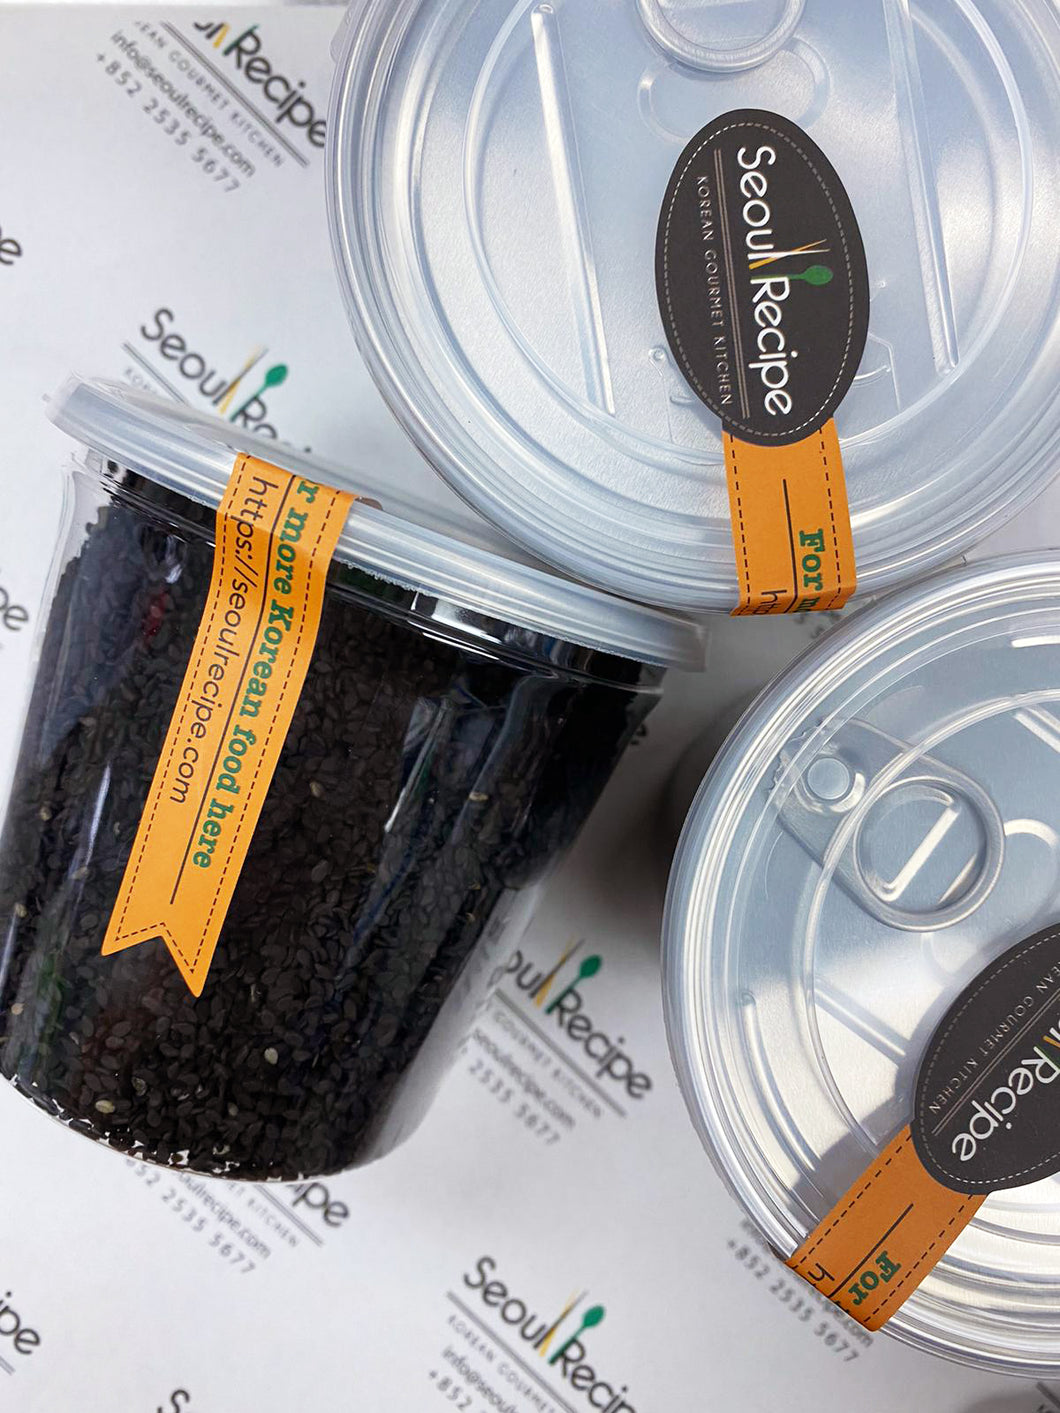 Roasted Black Sesame  볶음 통참깨 (흑) (200g)